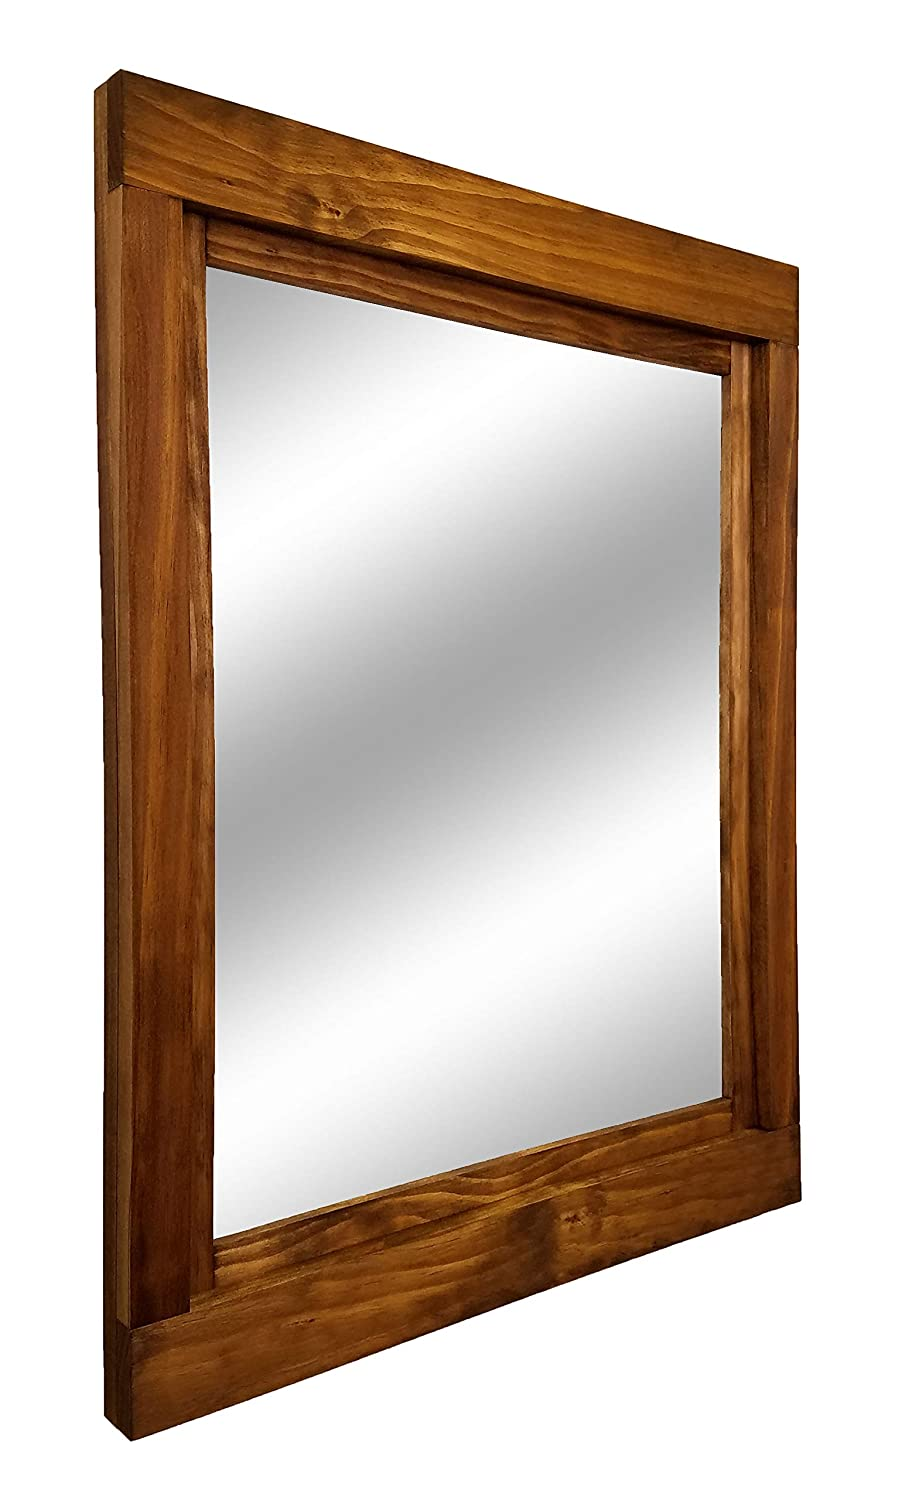 Bathroom Mirror Decor Entryway Farmhouse Large Framed Mirror Available in 5 Sizes and 20 Stain Colors: Shown in Early American Vanity Mirror Bedroom Mirror Large Wall Mirror Rustic Decor